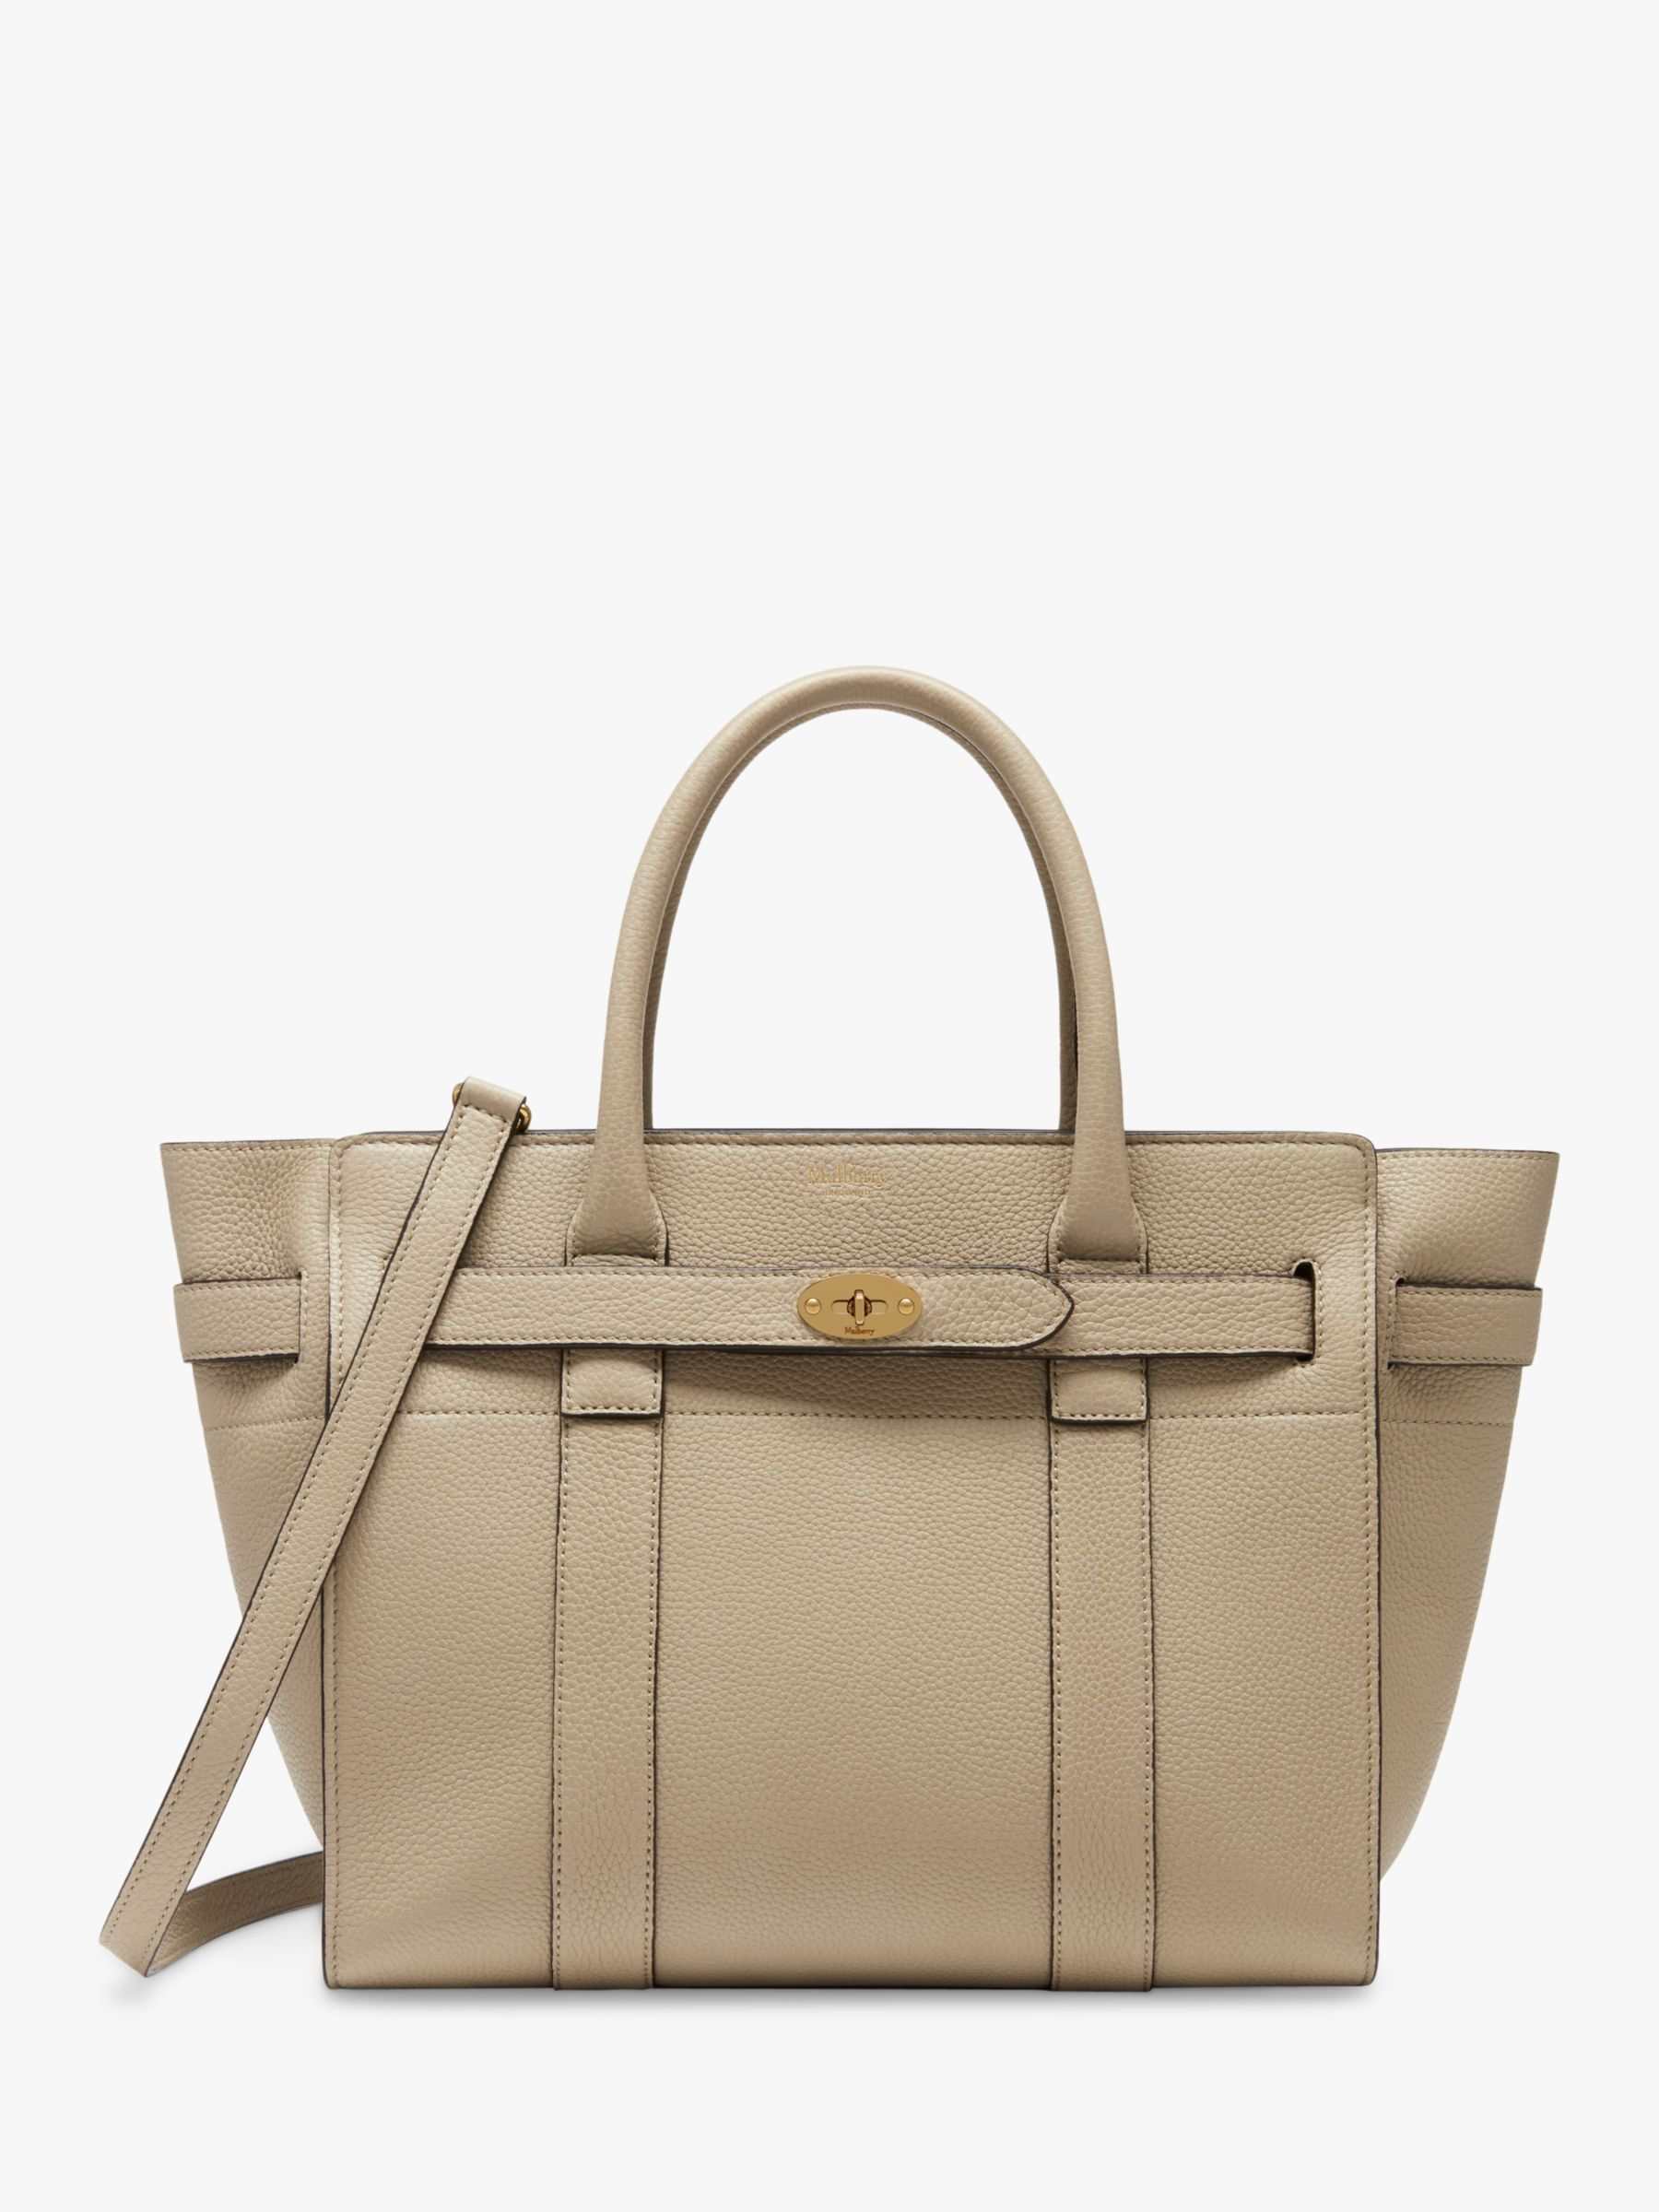 4db72ab7c39e Mulberry Small Bayswater Zipped Classic Grain Leather Tote Bag at John  Lewis   Partners